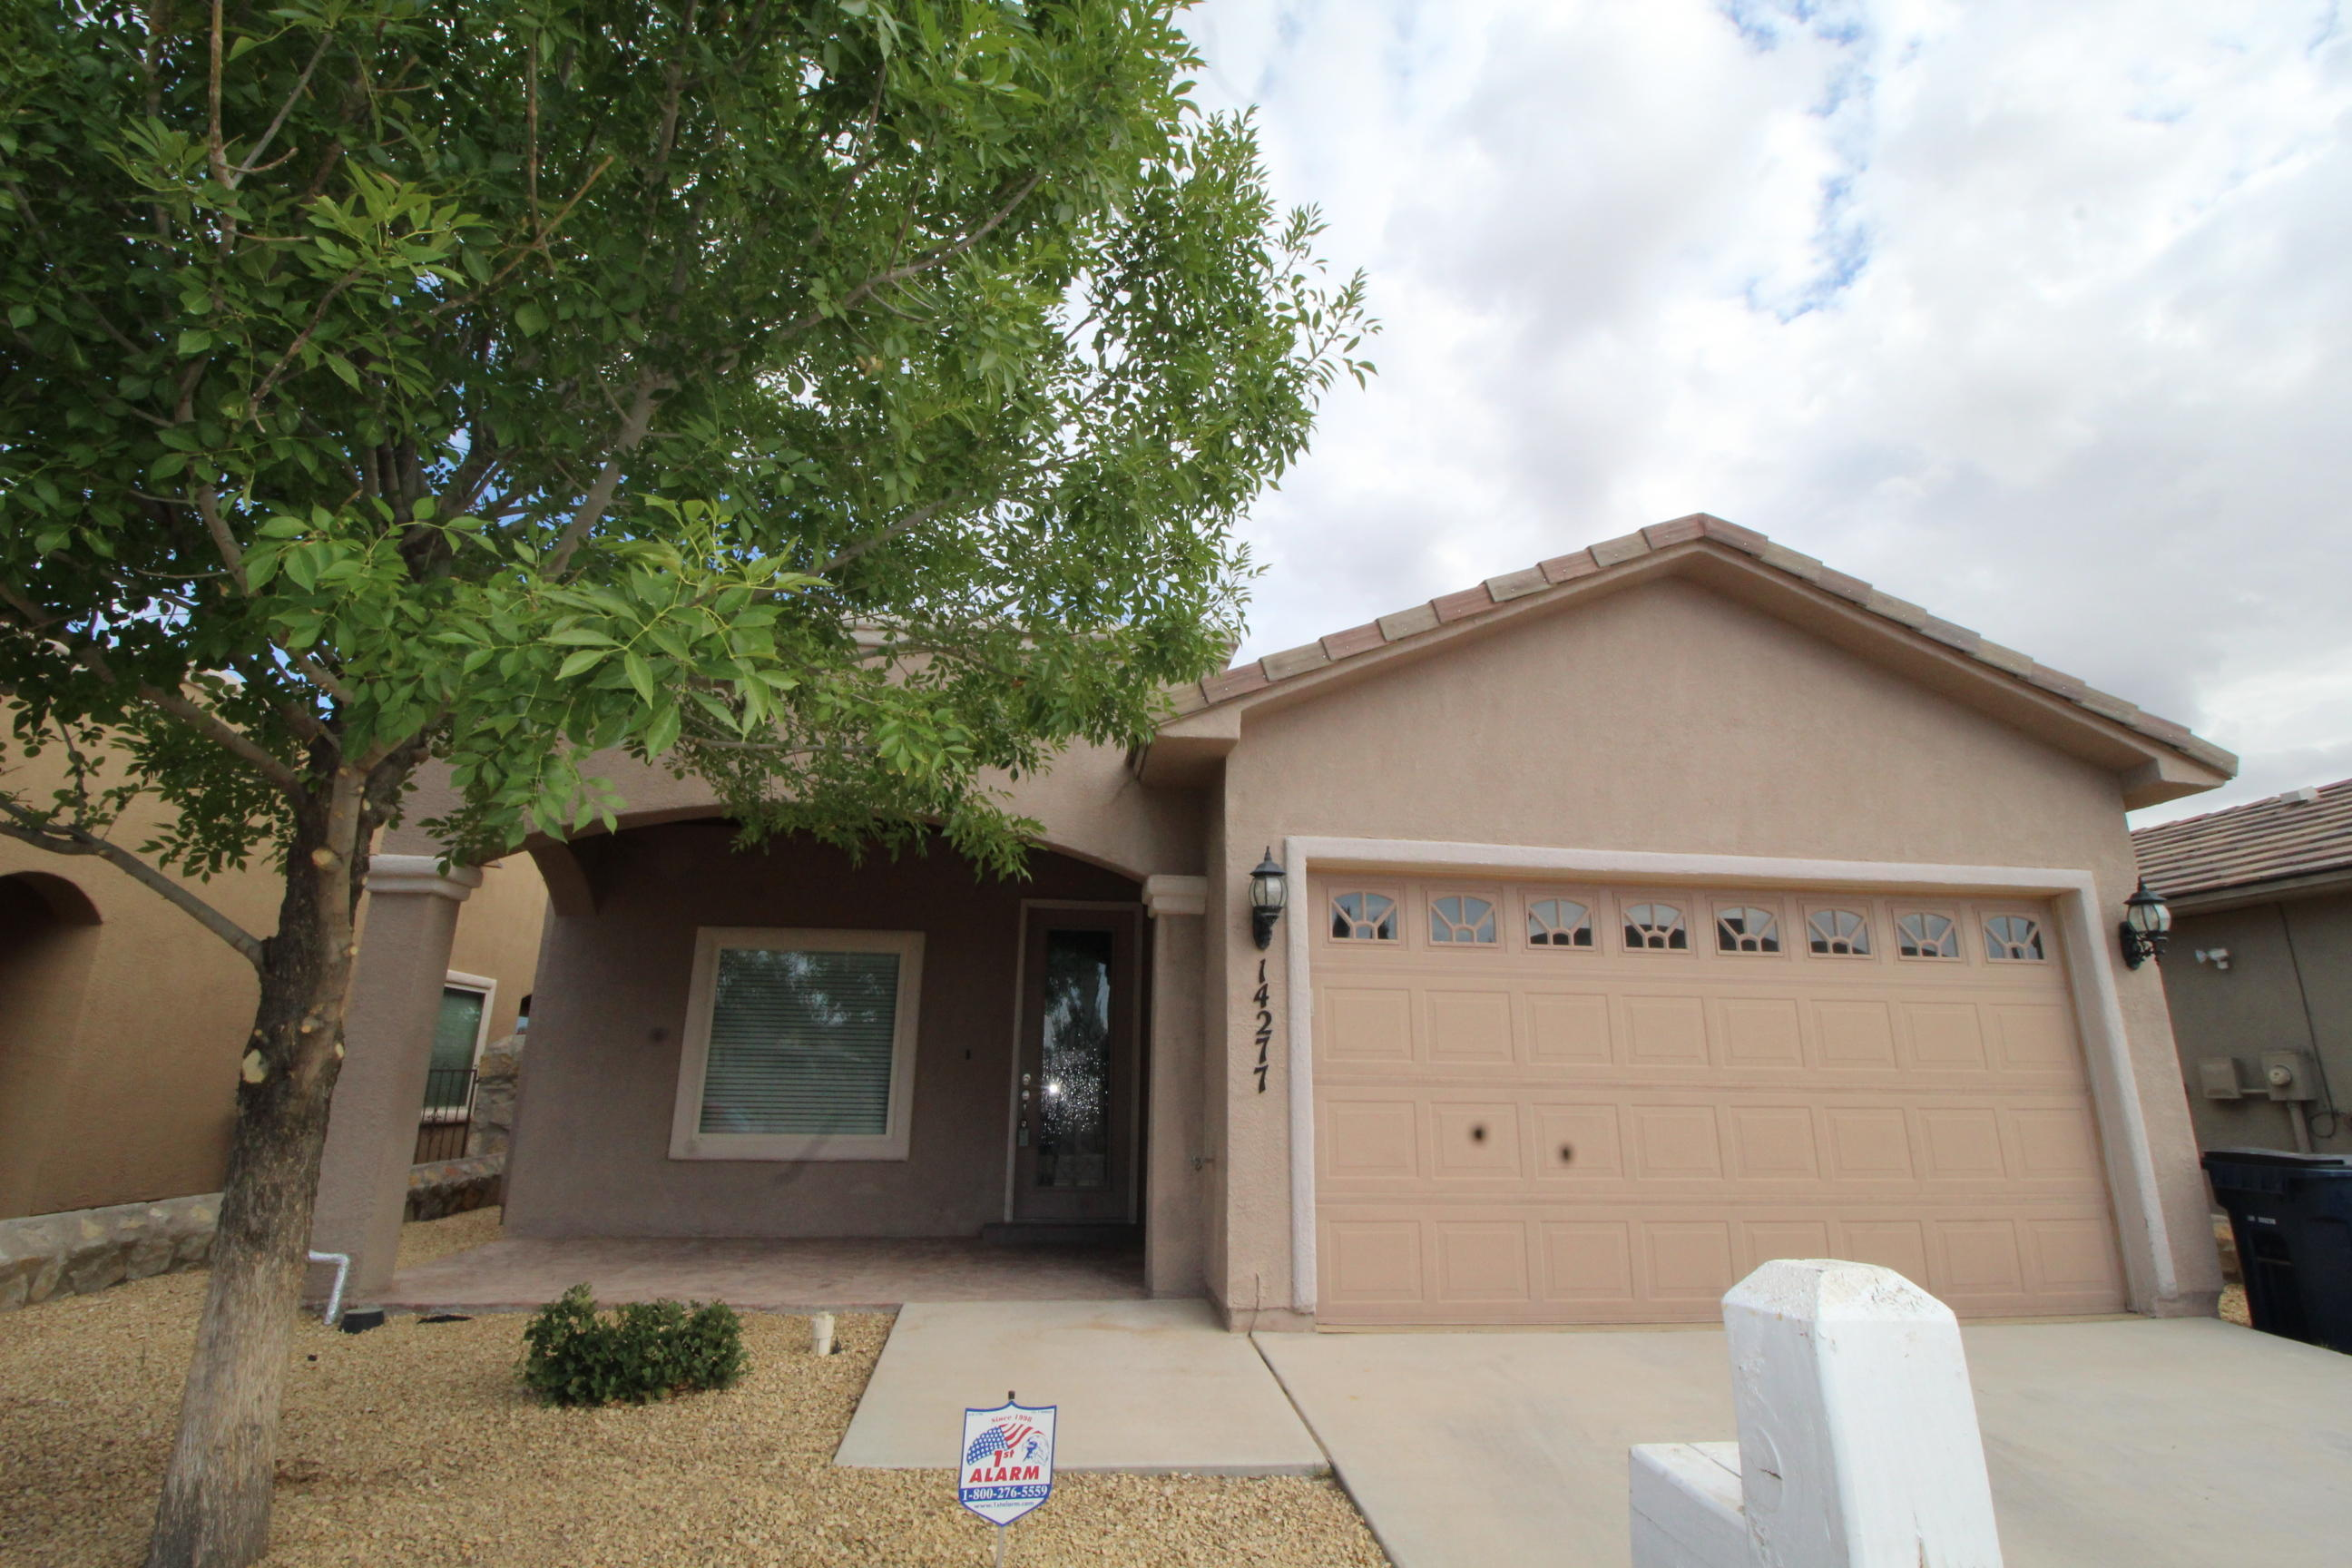 14277 ANDRE AGASSI Drive, El Paso, Texas 79938, 3 Bedrooms Bedrooms, ,2 BathroomsBathrooms,Residential Rental,For Rent,ANDRE AGASSI,822450